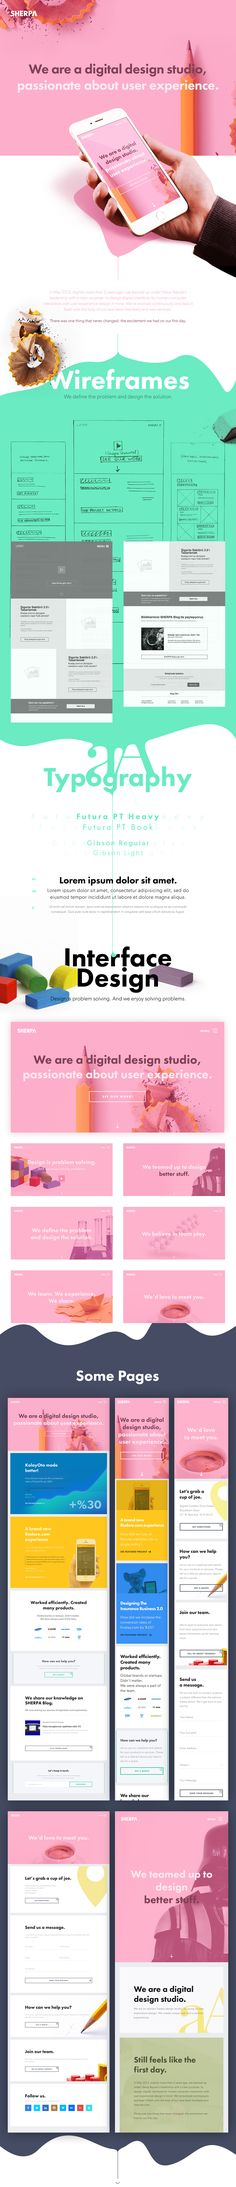 SHERPA Website V2.0 on Web Design Served